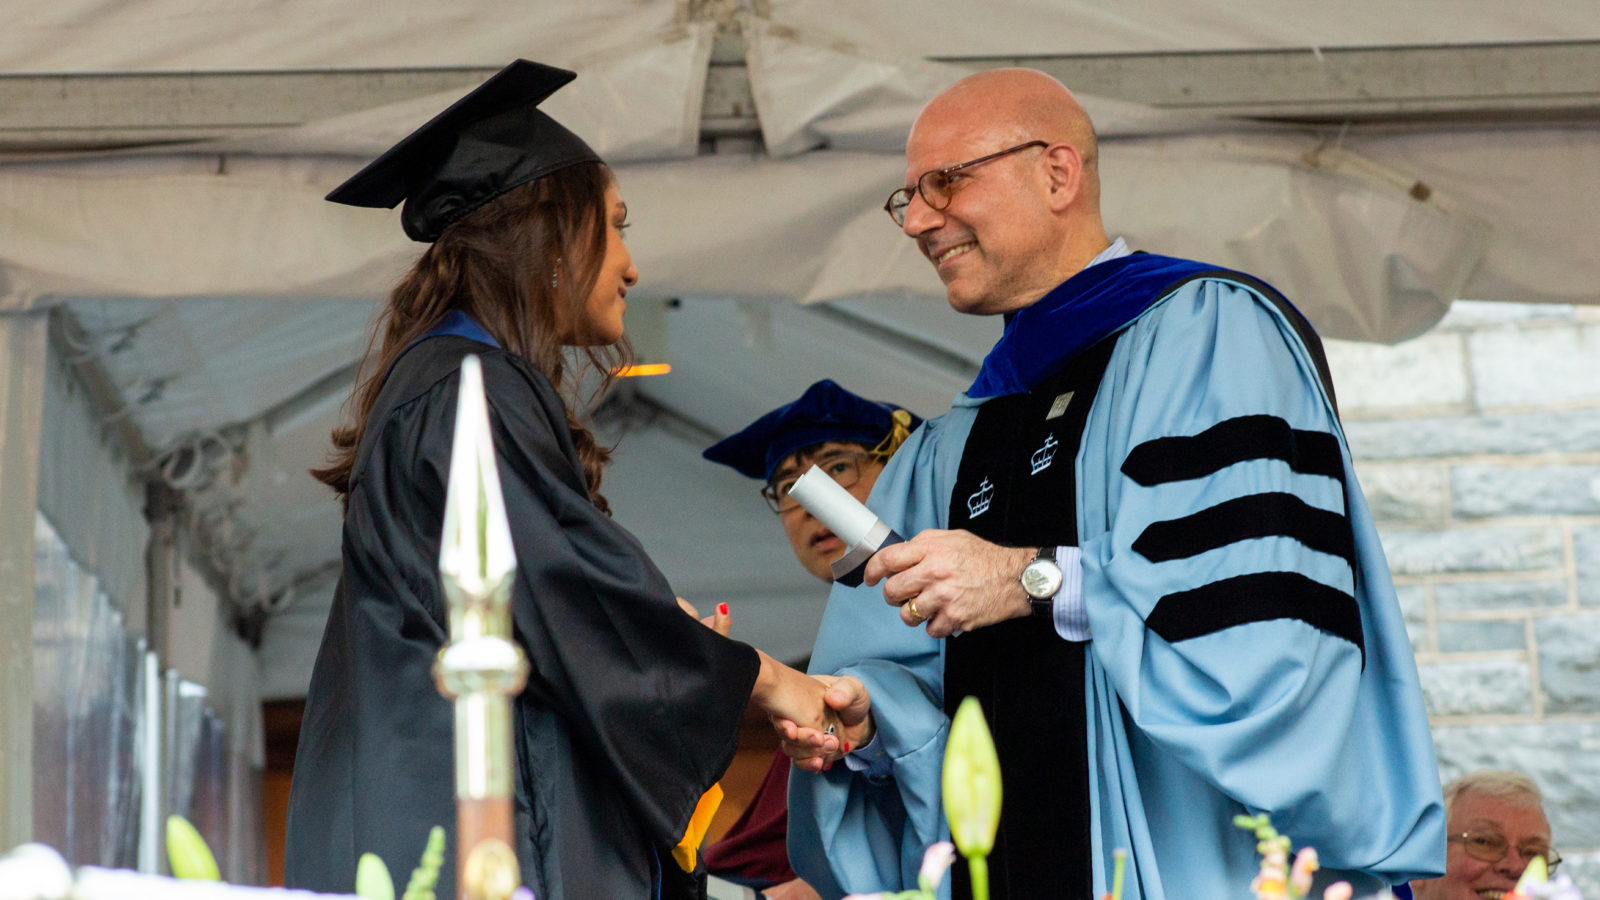 Dean Helman handing degree to student